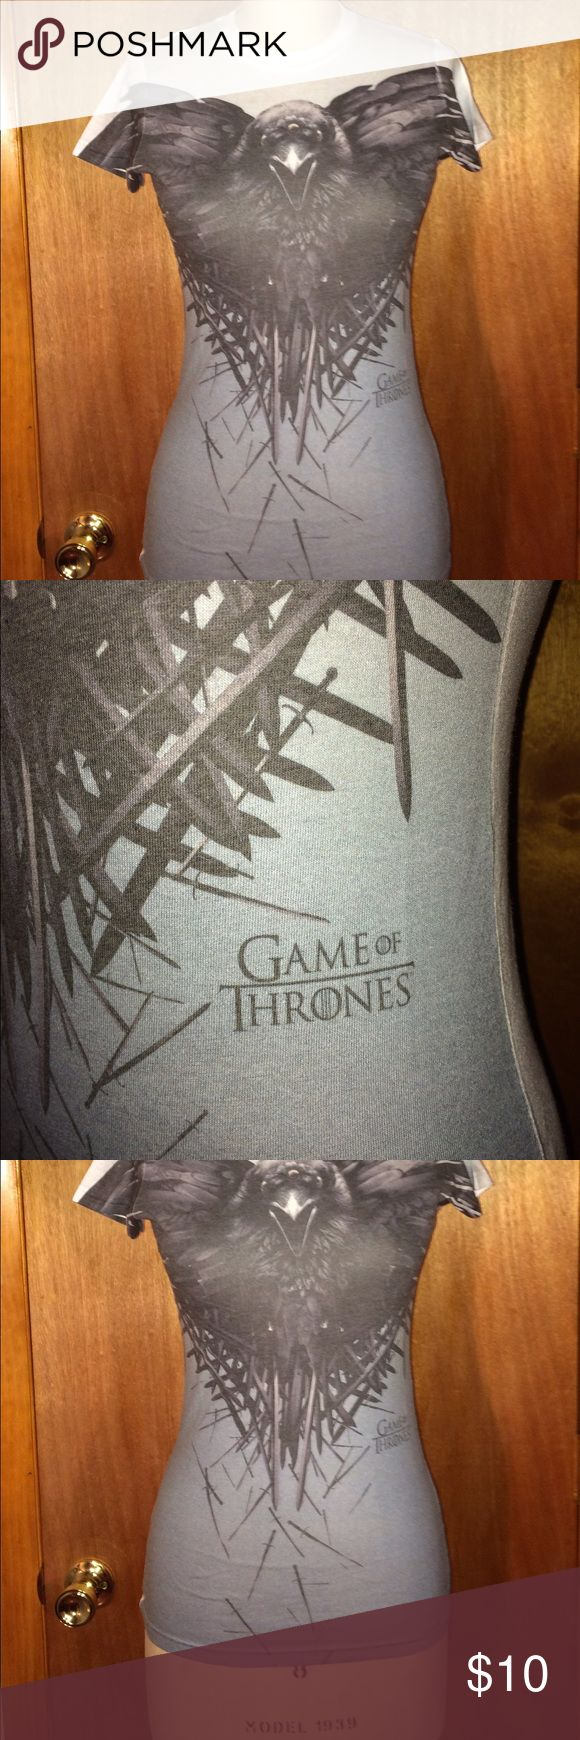 "NWOT Game of Thrones T-Shirt Sz Jrs S NWOT Hame of Thrones crow super soft t-shirt Sz Jrs Small.  Chest: 17"", waist: 14"", total length: 25.5"".  In new condition. Tops Tees - Short Sleeve"